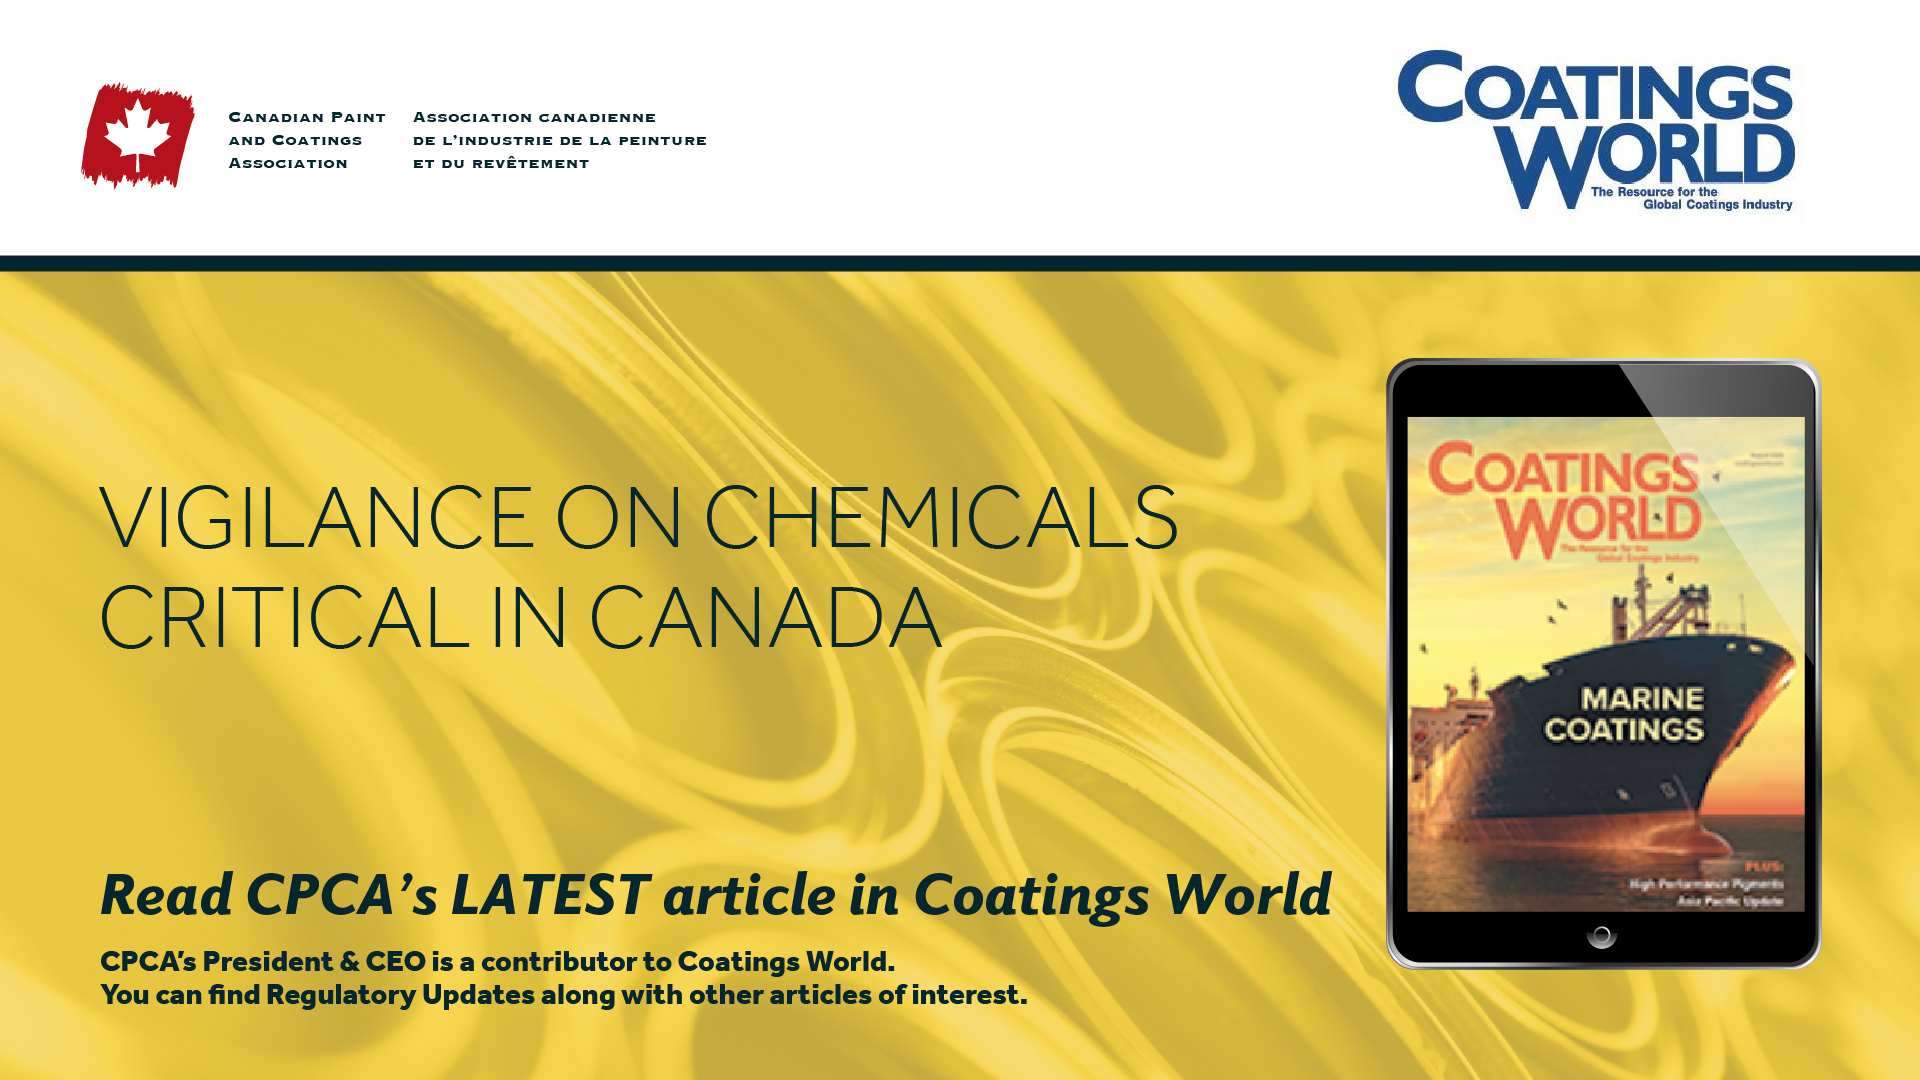 Vigilance on Chemicals Critical in Canada